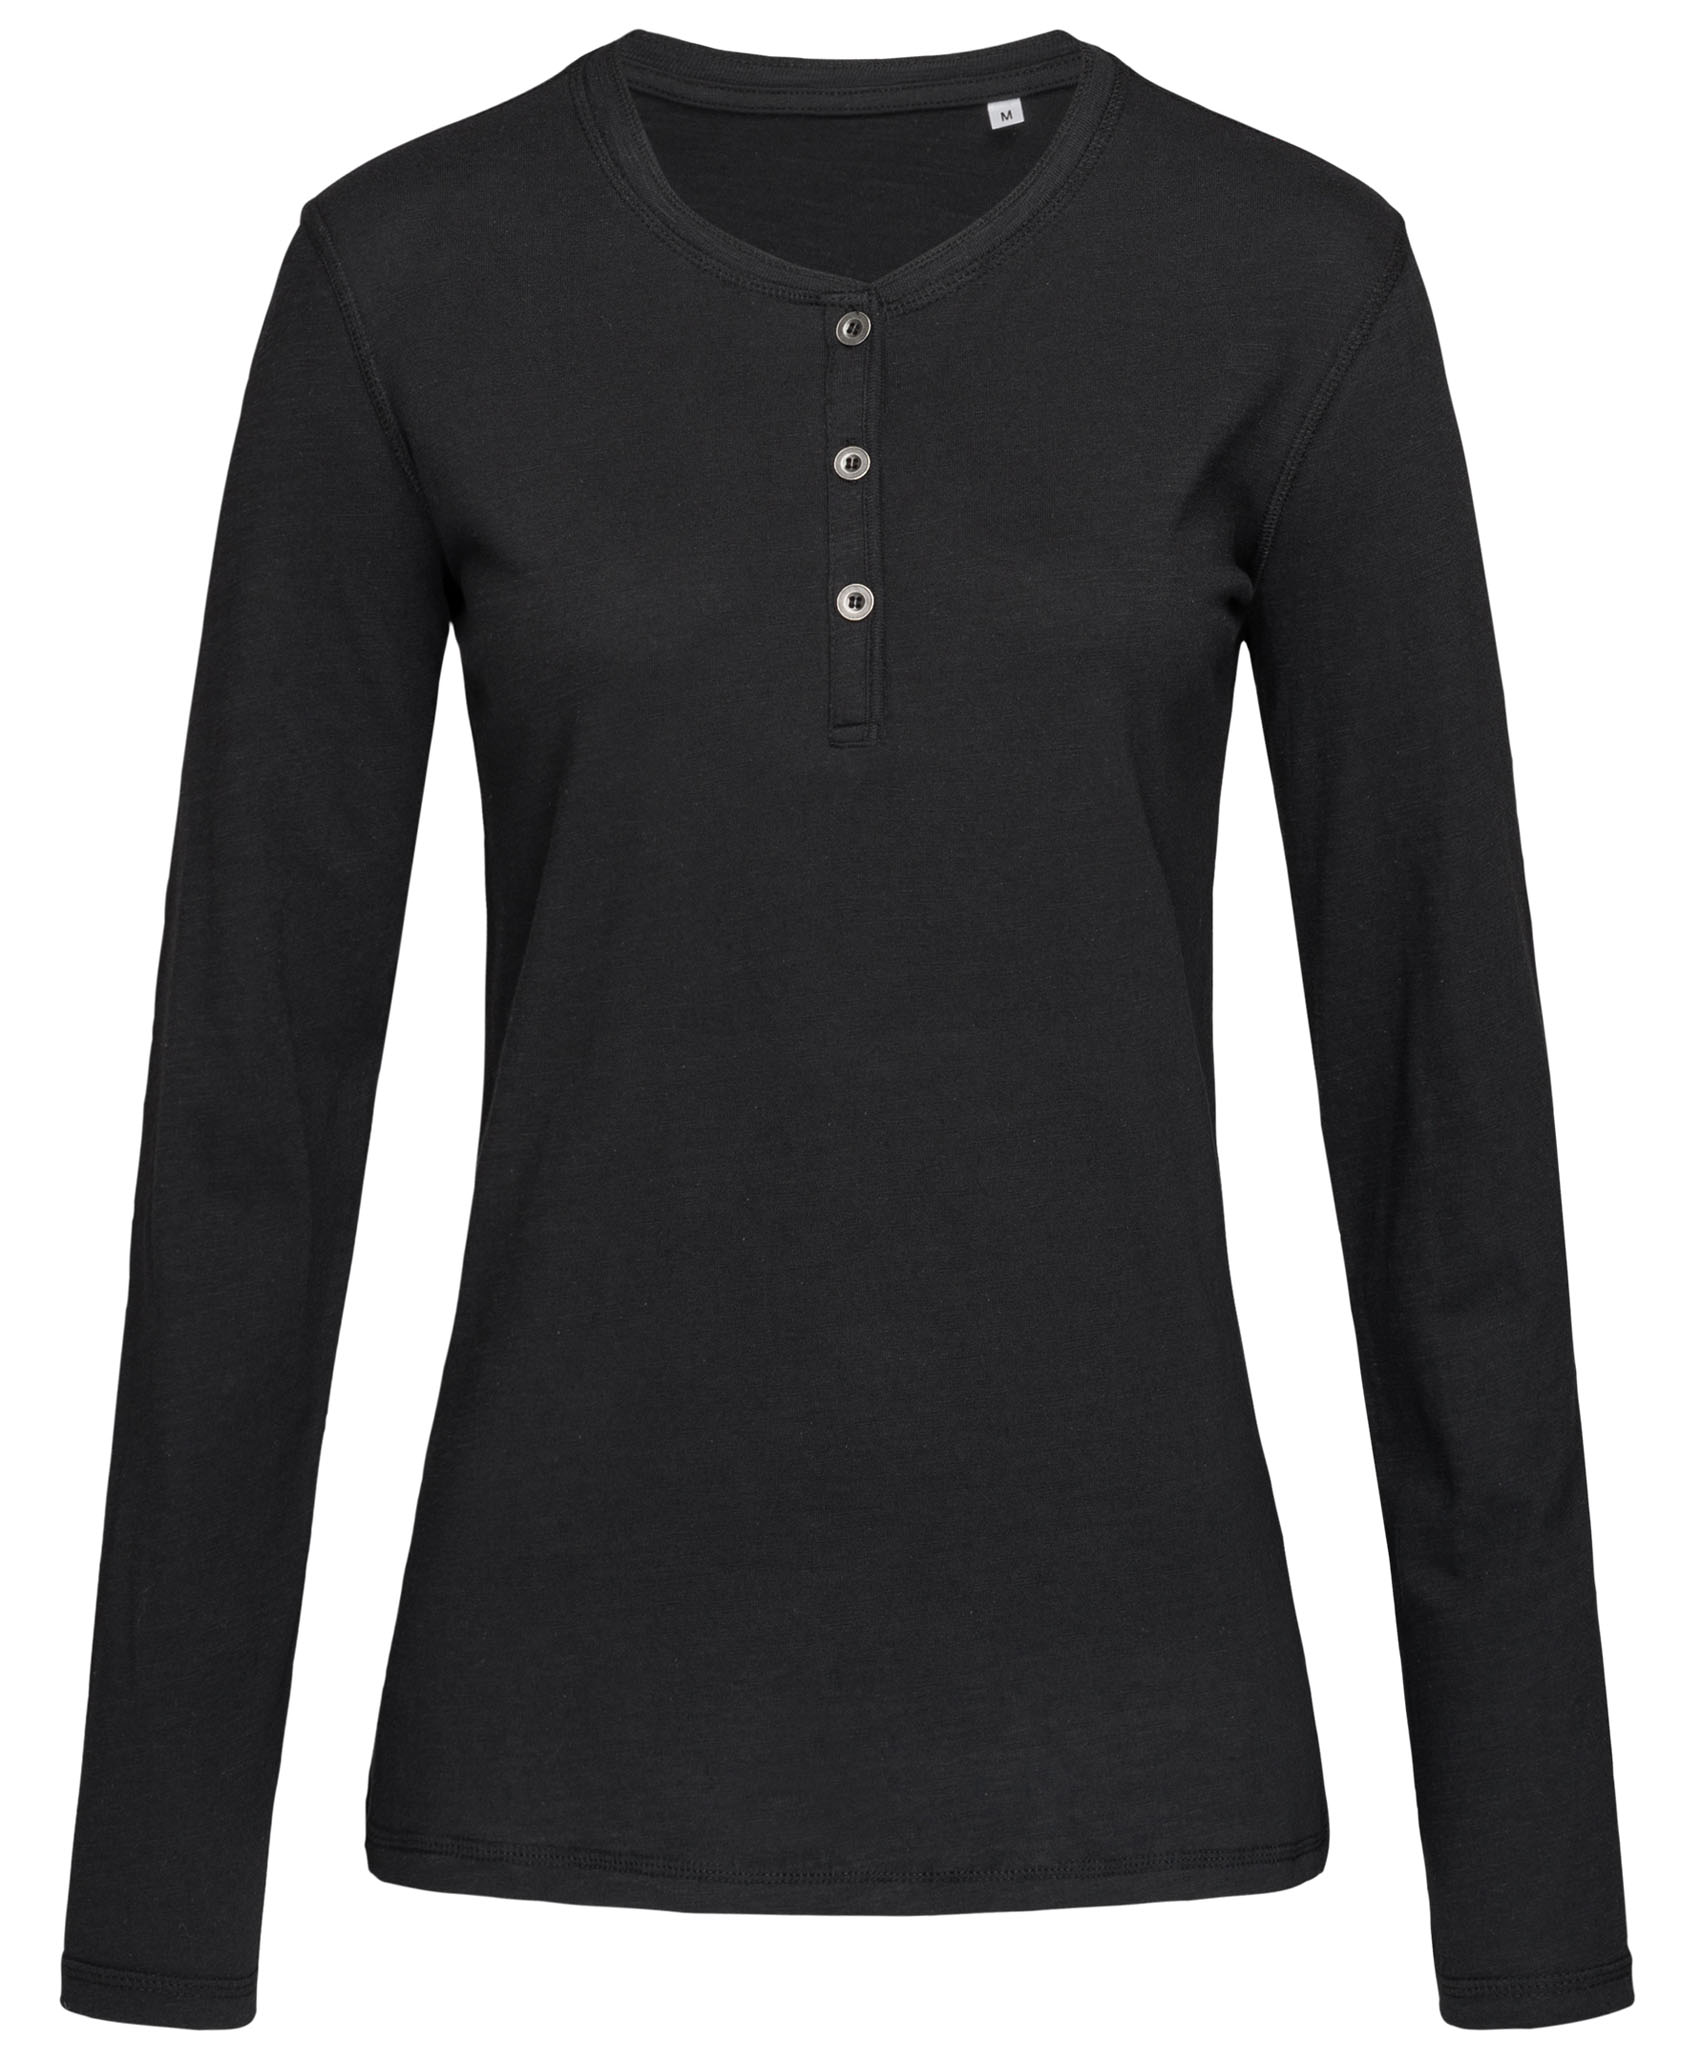 Stedman T-shirt Henley Sharon LS for her